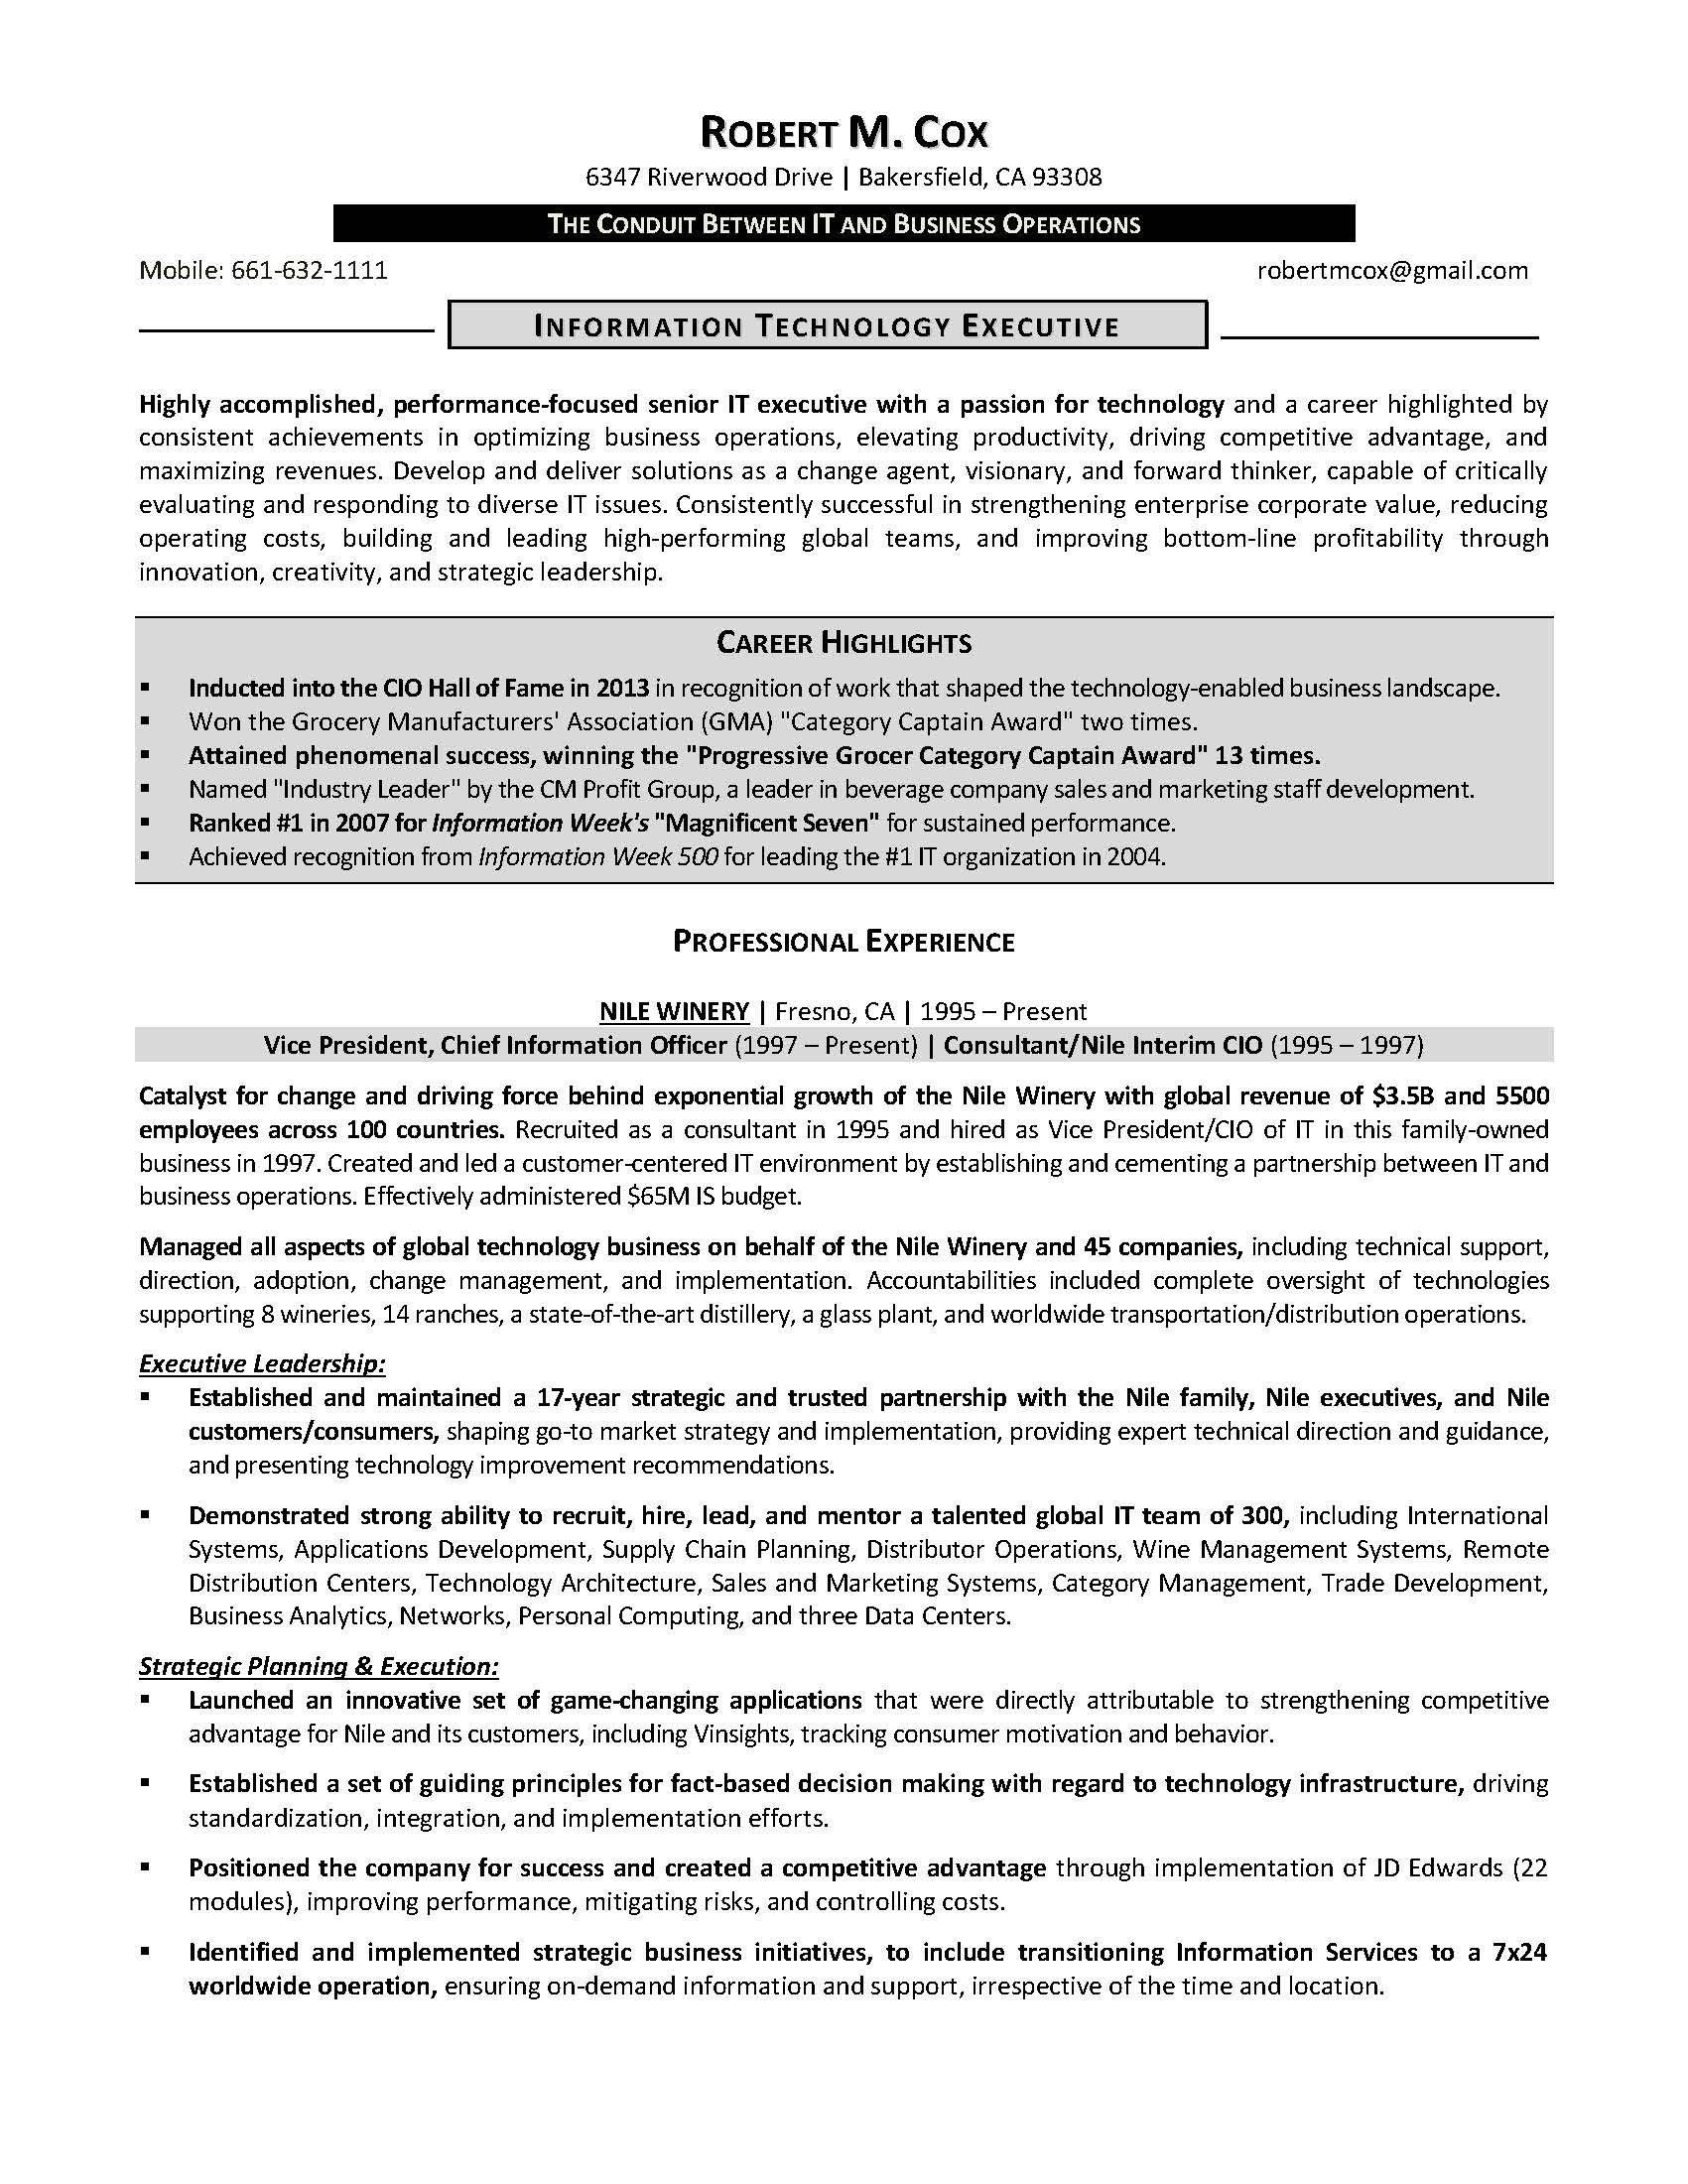 Admin Asst Cover Letter An Argumentative Essay Introduction